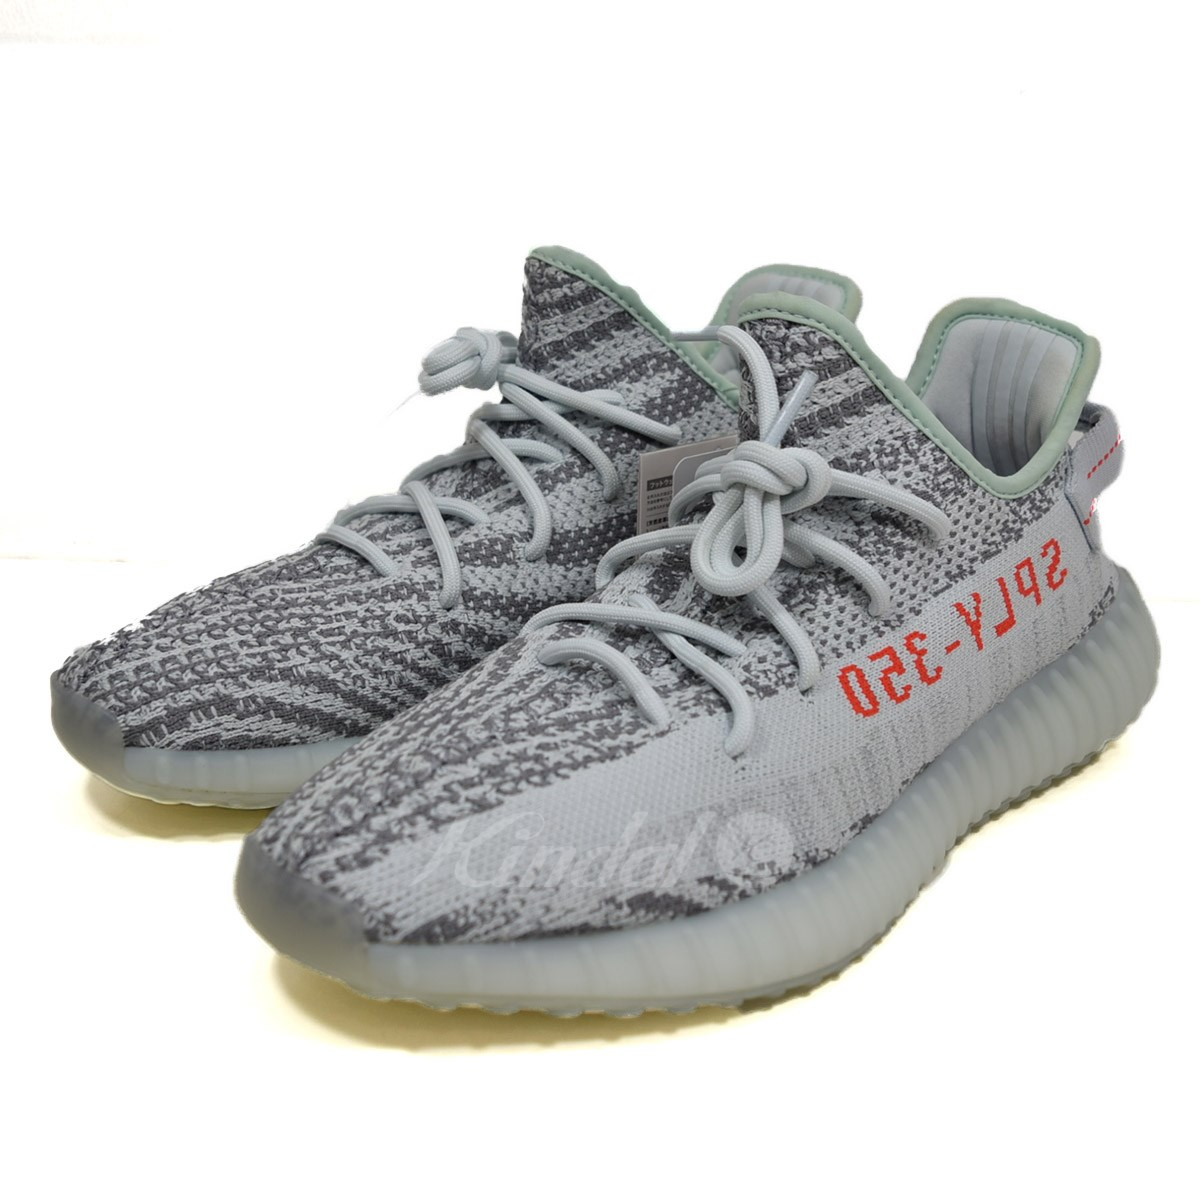 642d73fe409c adidas Originals by Kanye West YEEZY BOOST 350 V2 BLUE TINT B37571 BLUE TINT  size  US 10 (Adidas originals by Kanie waist)